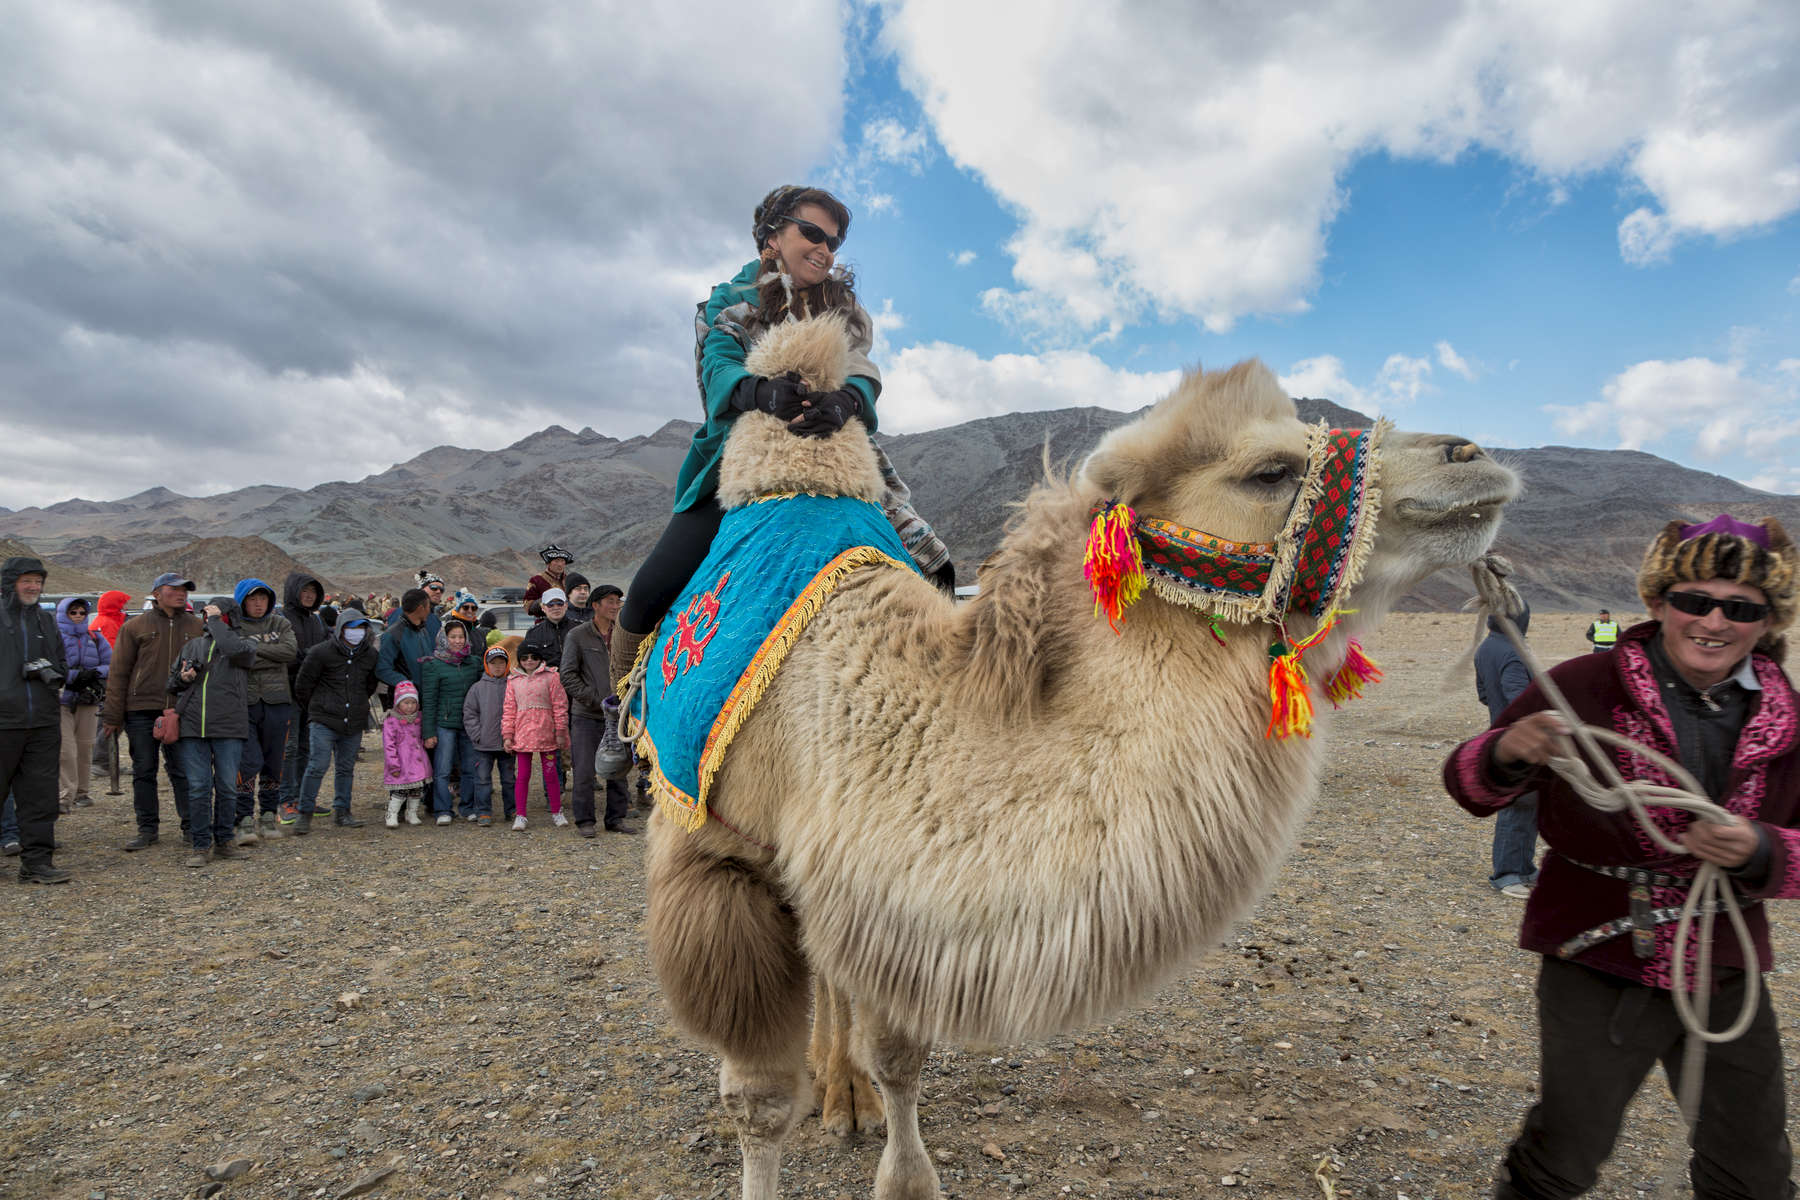 Enjoying a surprisingly comfortable camel ride at the Eagle Festival. (Photo taken by instructor Jonathan Stewart)